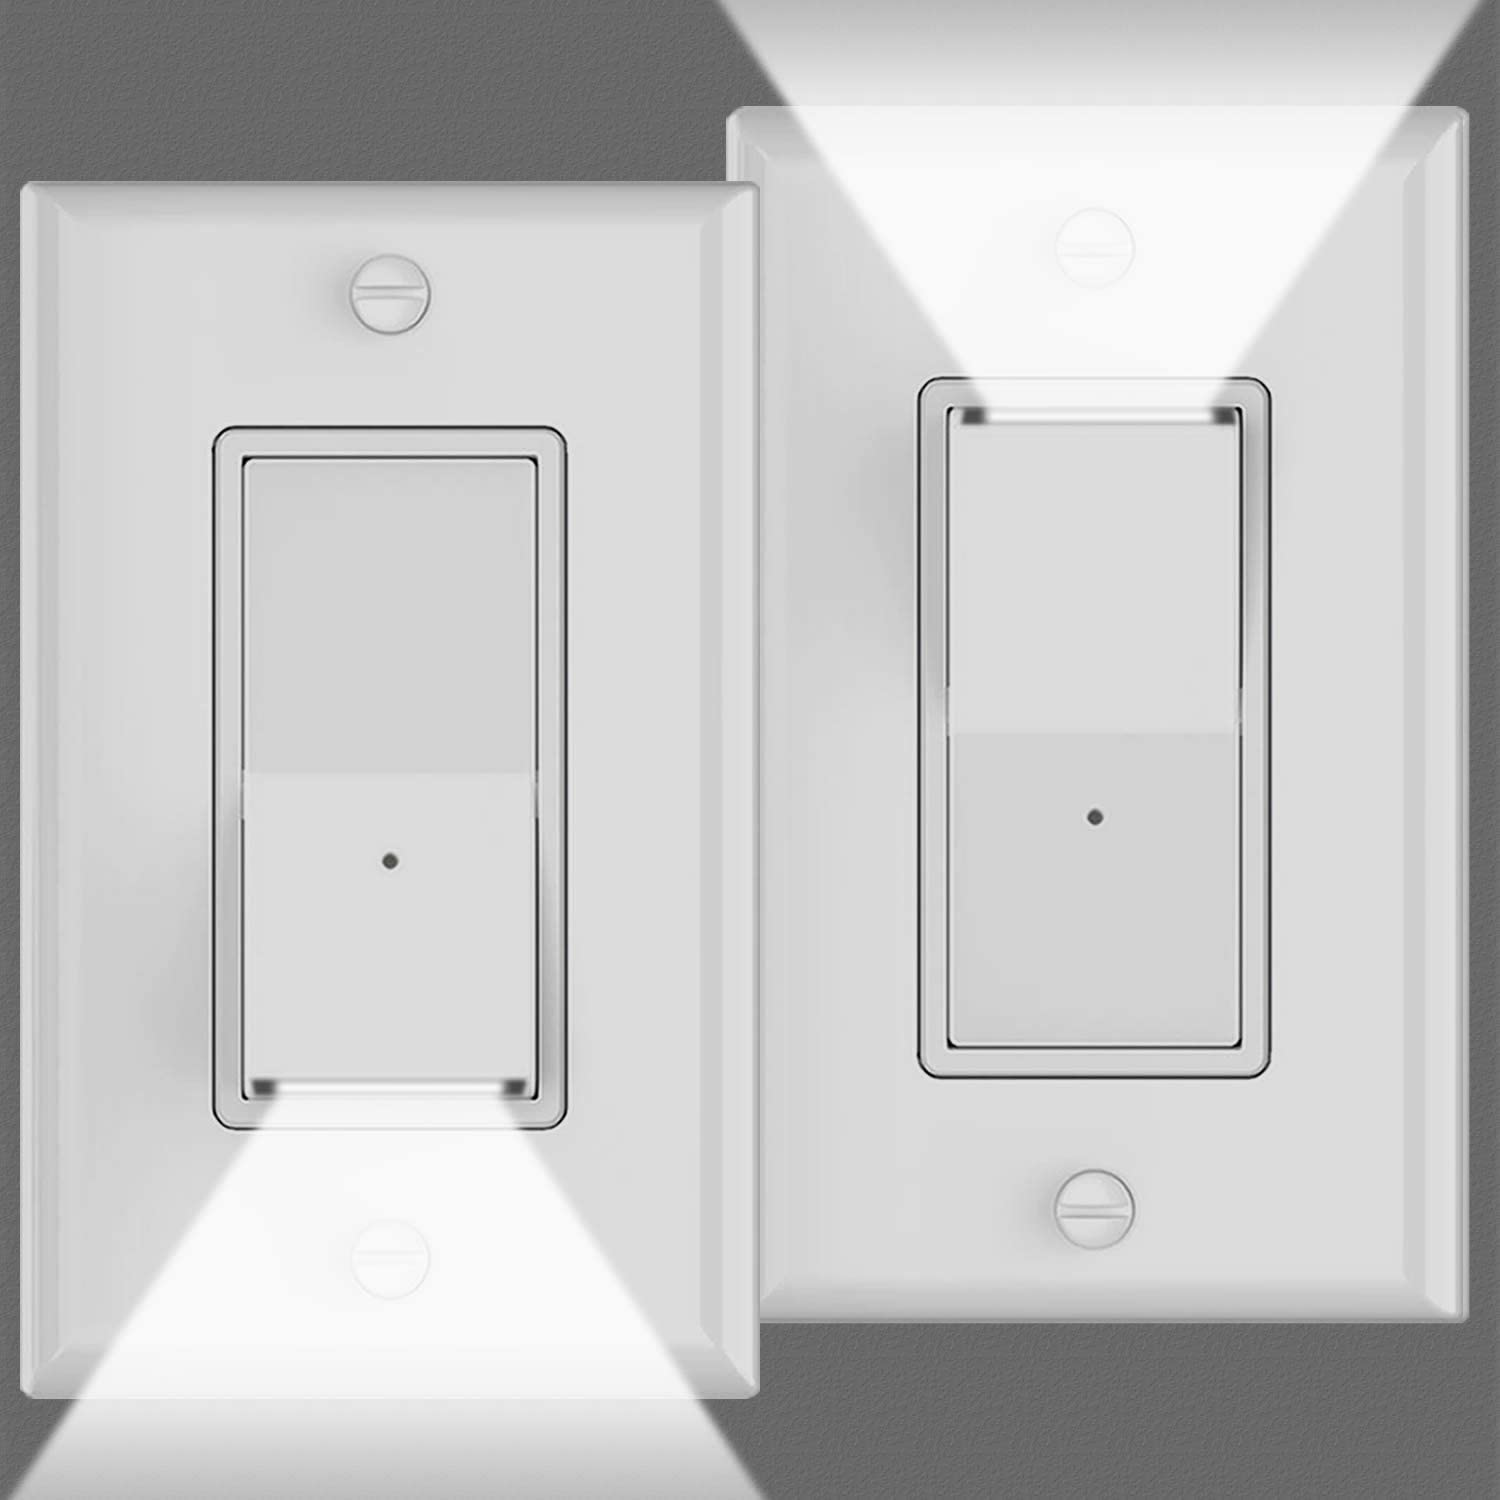 2Pack-SOZULAMP 3 Way Illuminated Light Switch-Easy Install,Perfect Combination of Wall Light Switch and Night Light-Decora Paddle Rocker,15A,120/277V,Dusk to Dawn Sensor,Auto On/Off GuideLight,White